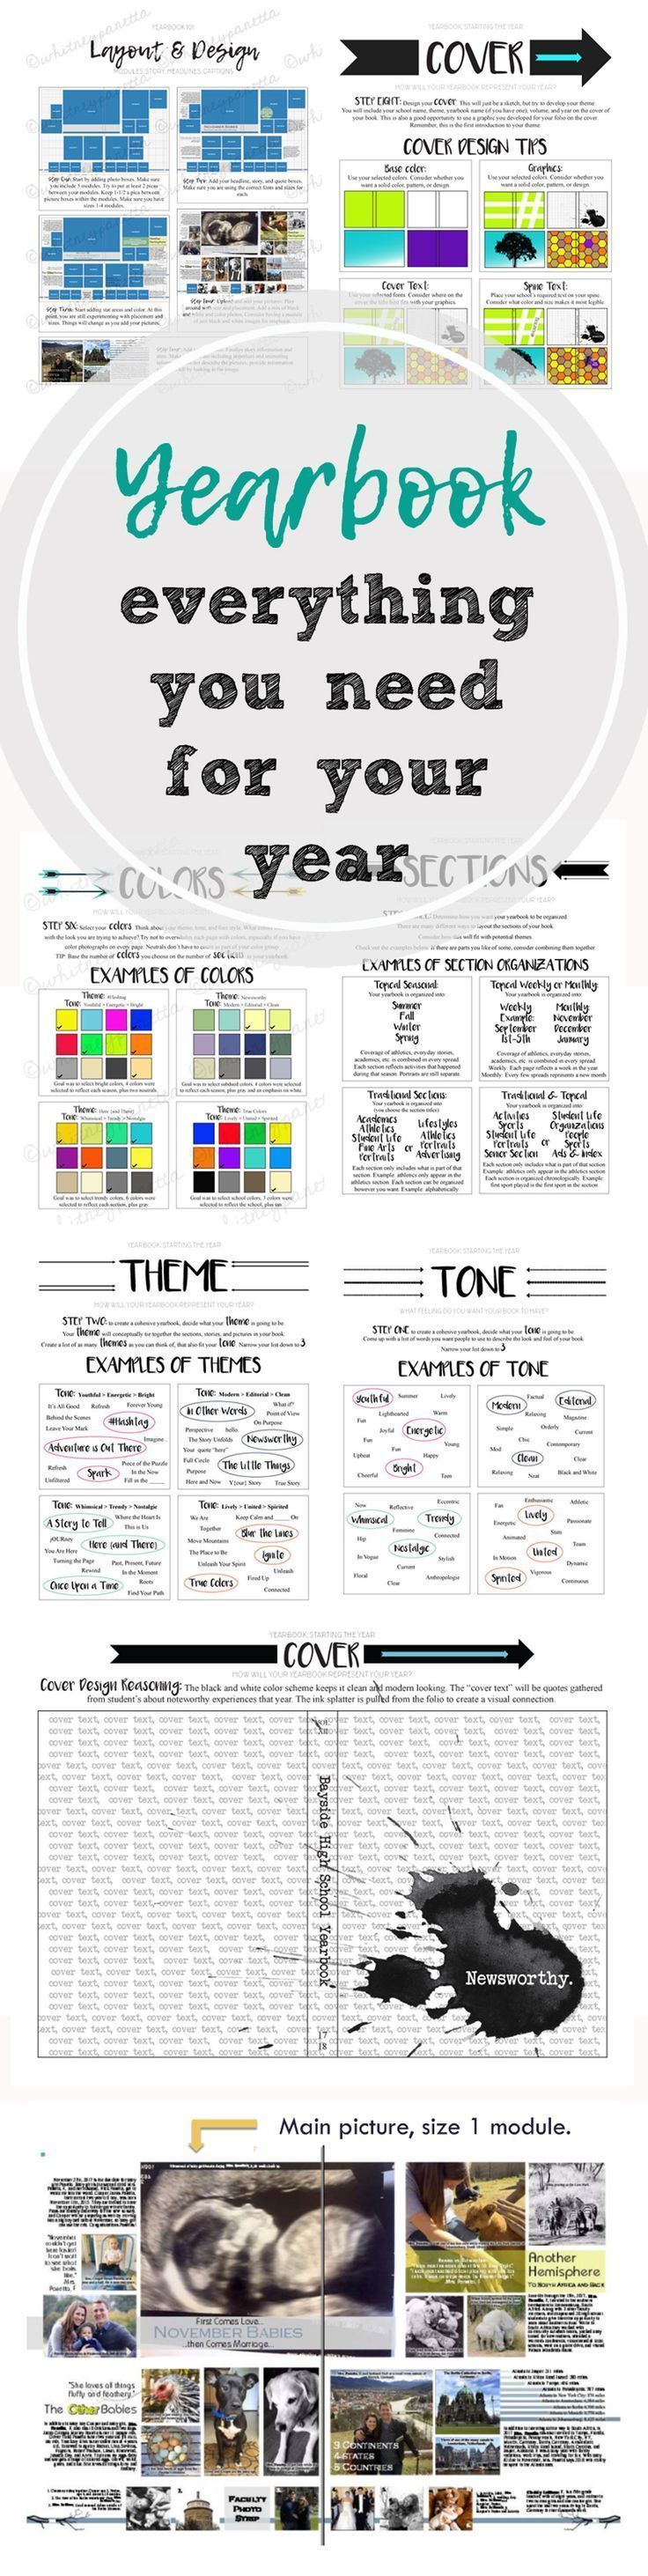 Everything you need to help your staff design, plan, and layout their yearbook. Includes theme, layout, cover design, font selection, tone, and more. Lesson plans, rubrics, handouts, activities, and a timeline to help you plan your year.